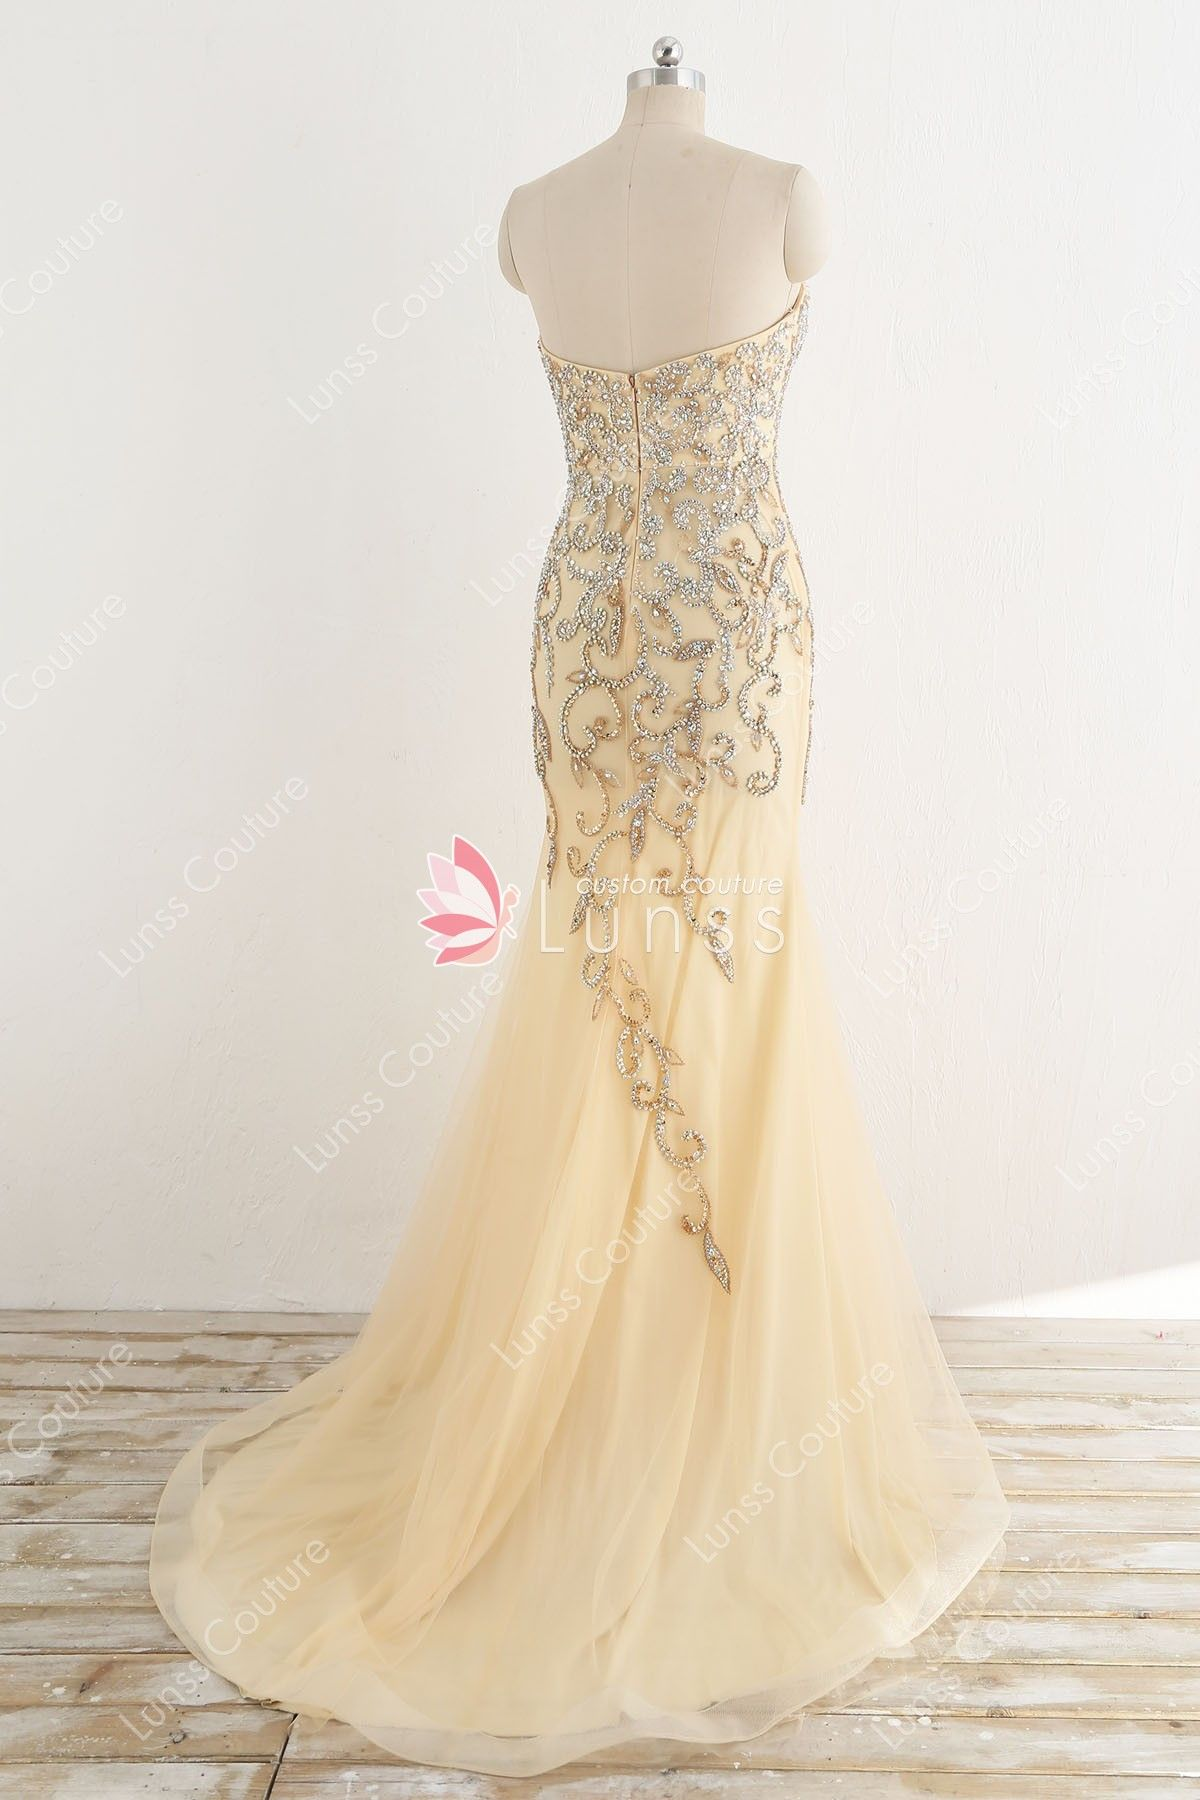 135862b64cf1 Champagne Beaded Strapless Sweetheart Mermaid Evening Prom Dress with Sweep  Train - Lunss Couture